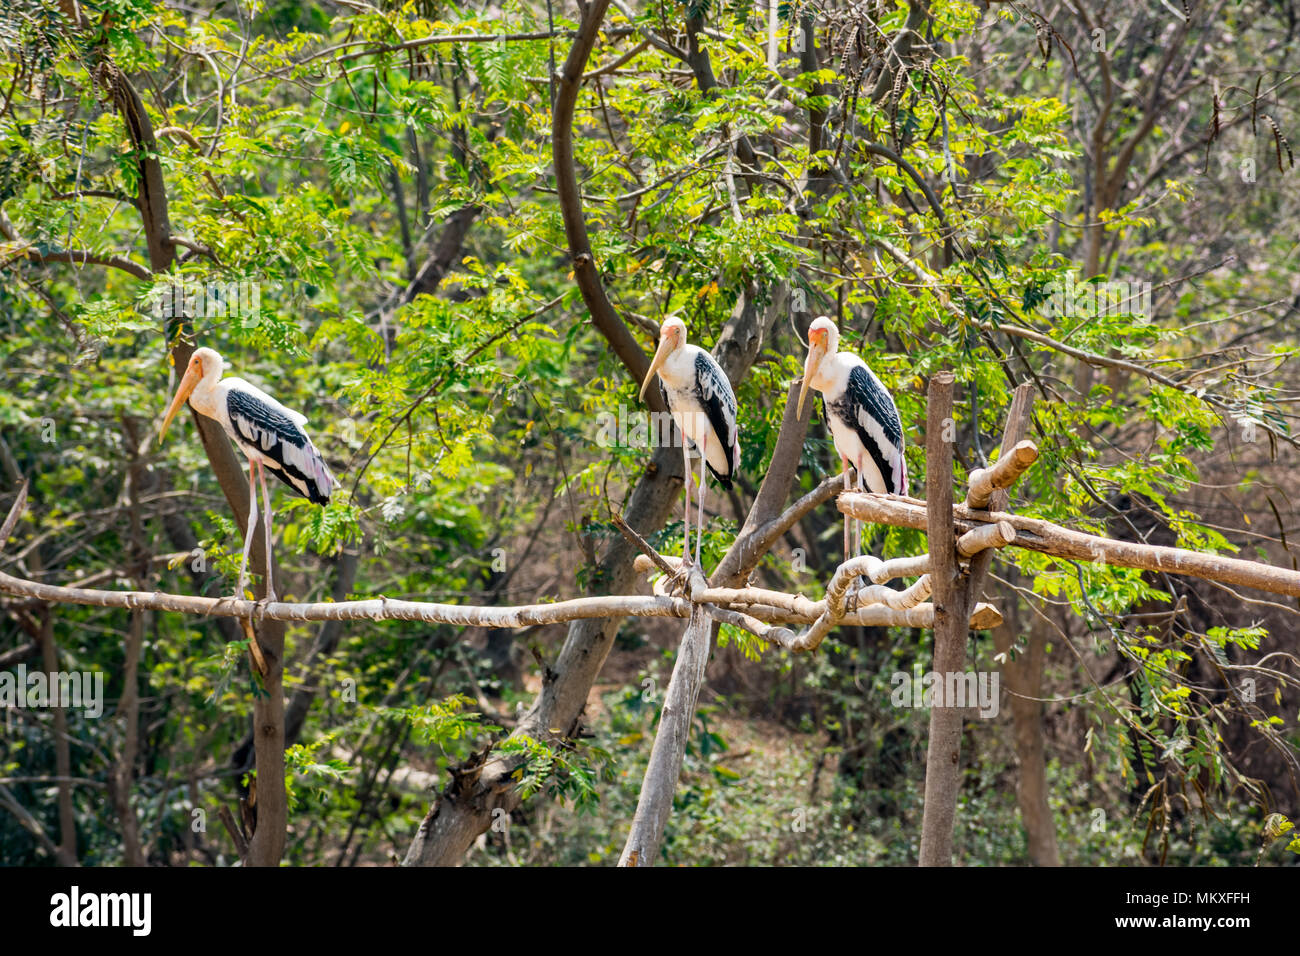 group of painted storks standing at tree at zoo looking awesome. Stock Photo